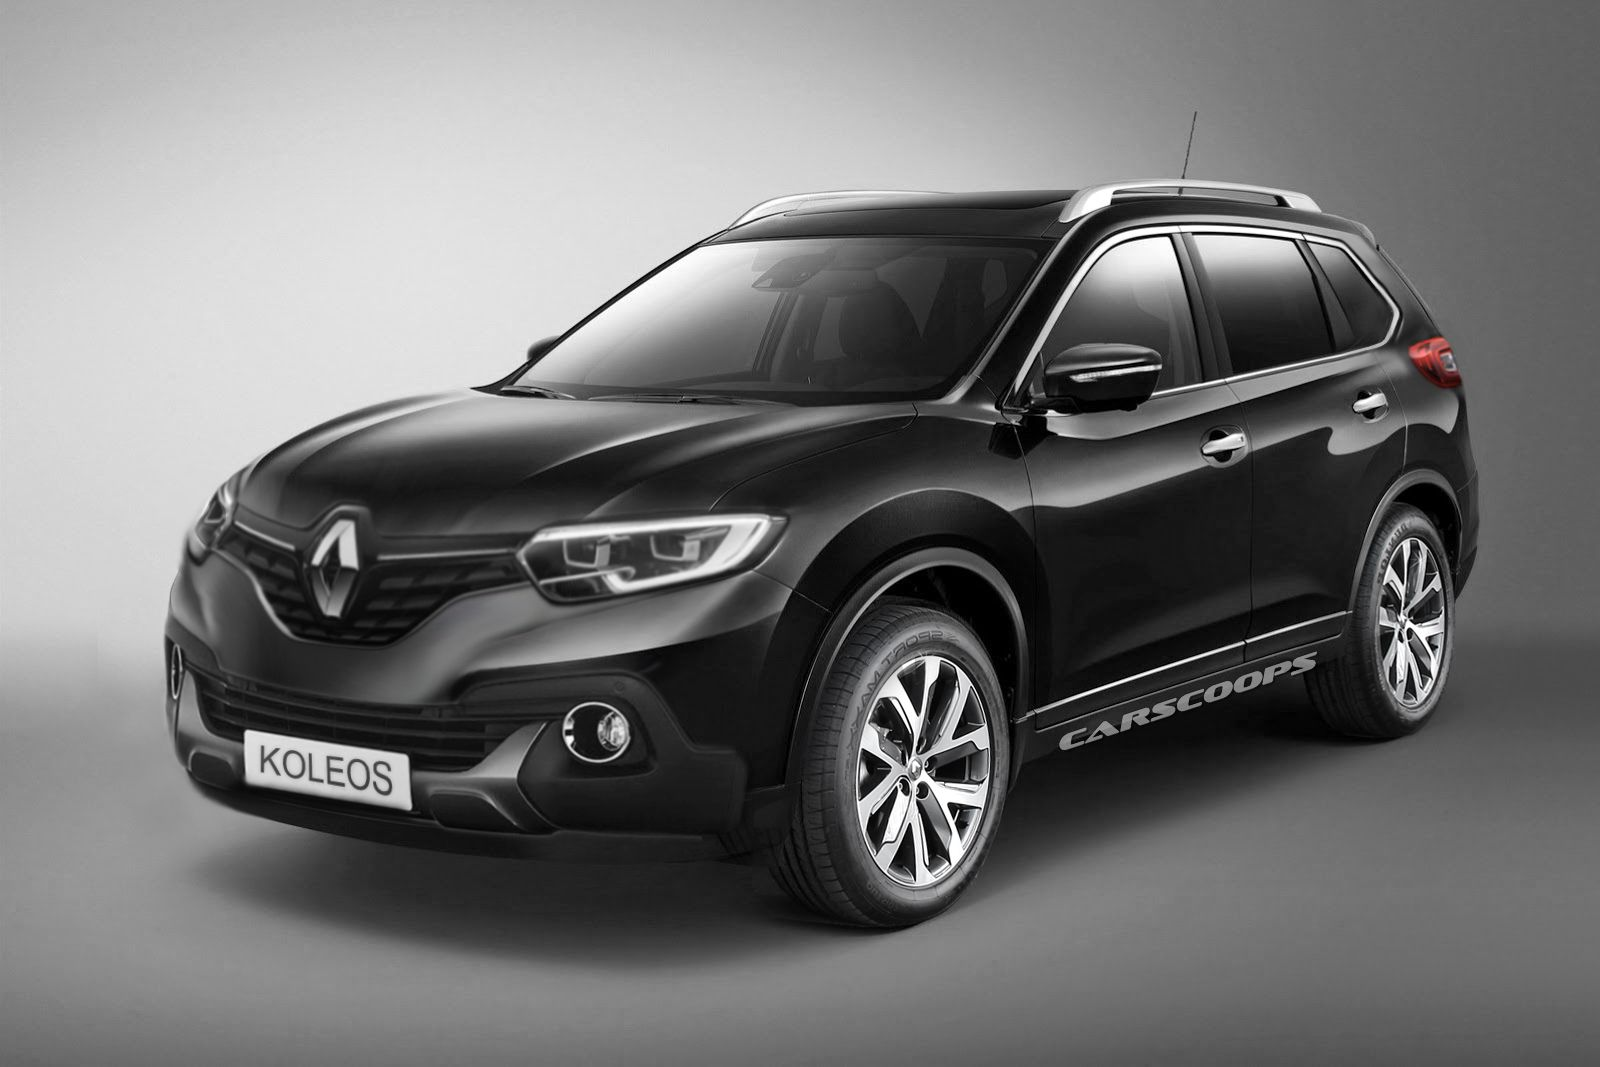 2017 renault koleos specs price and engine http. Black Bedroom Furniture Sets. Home Design Ideas